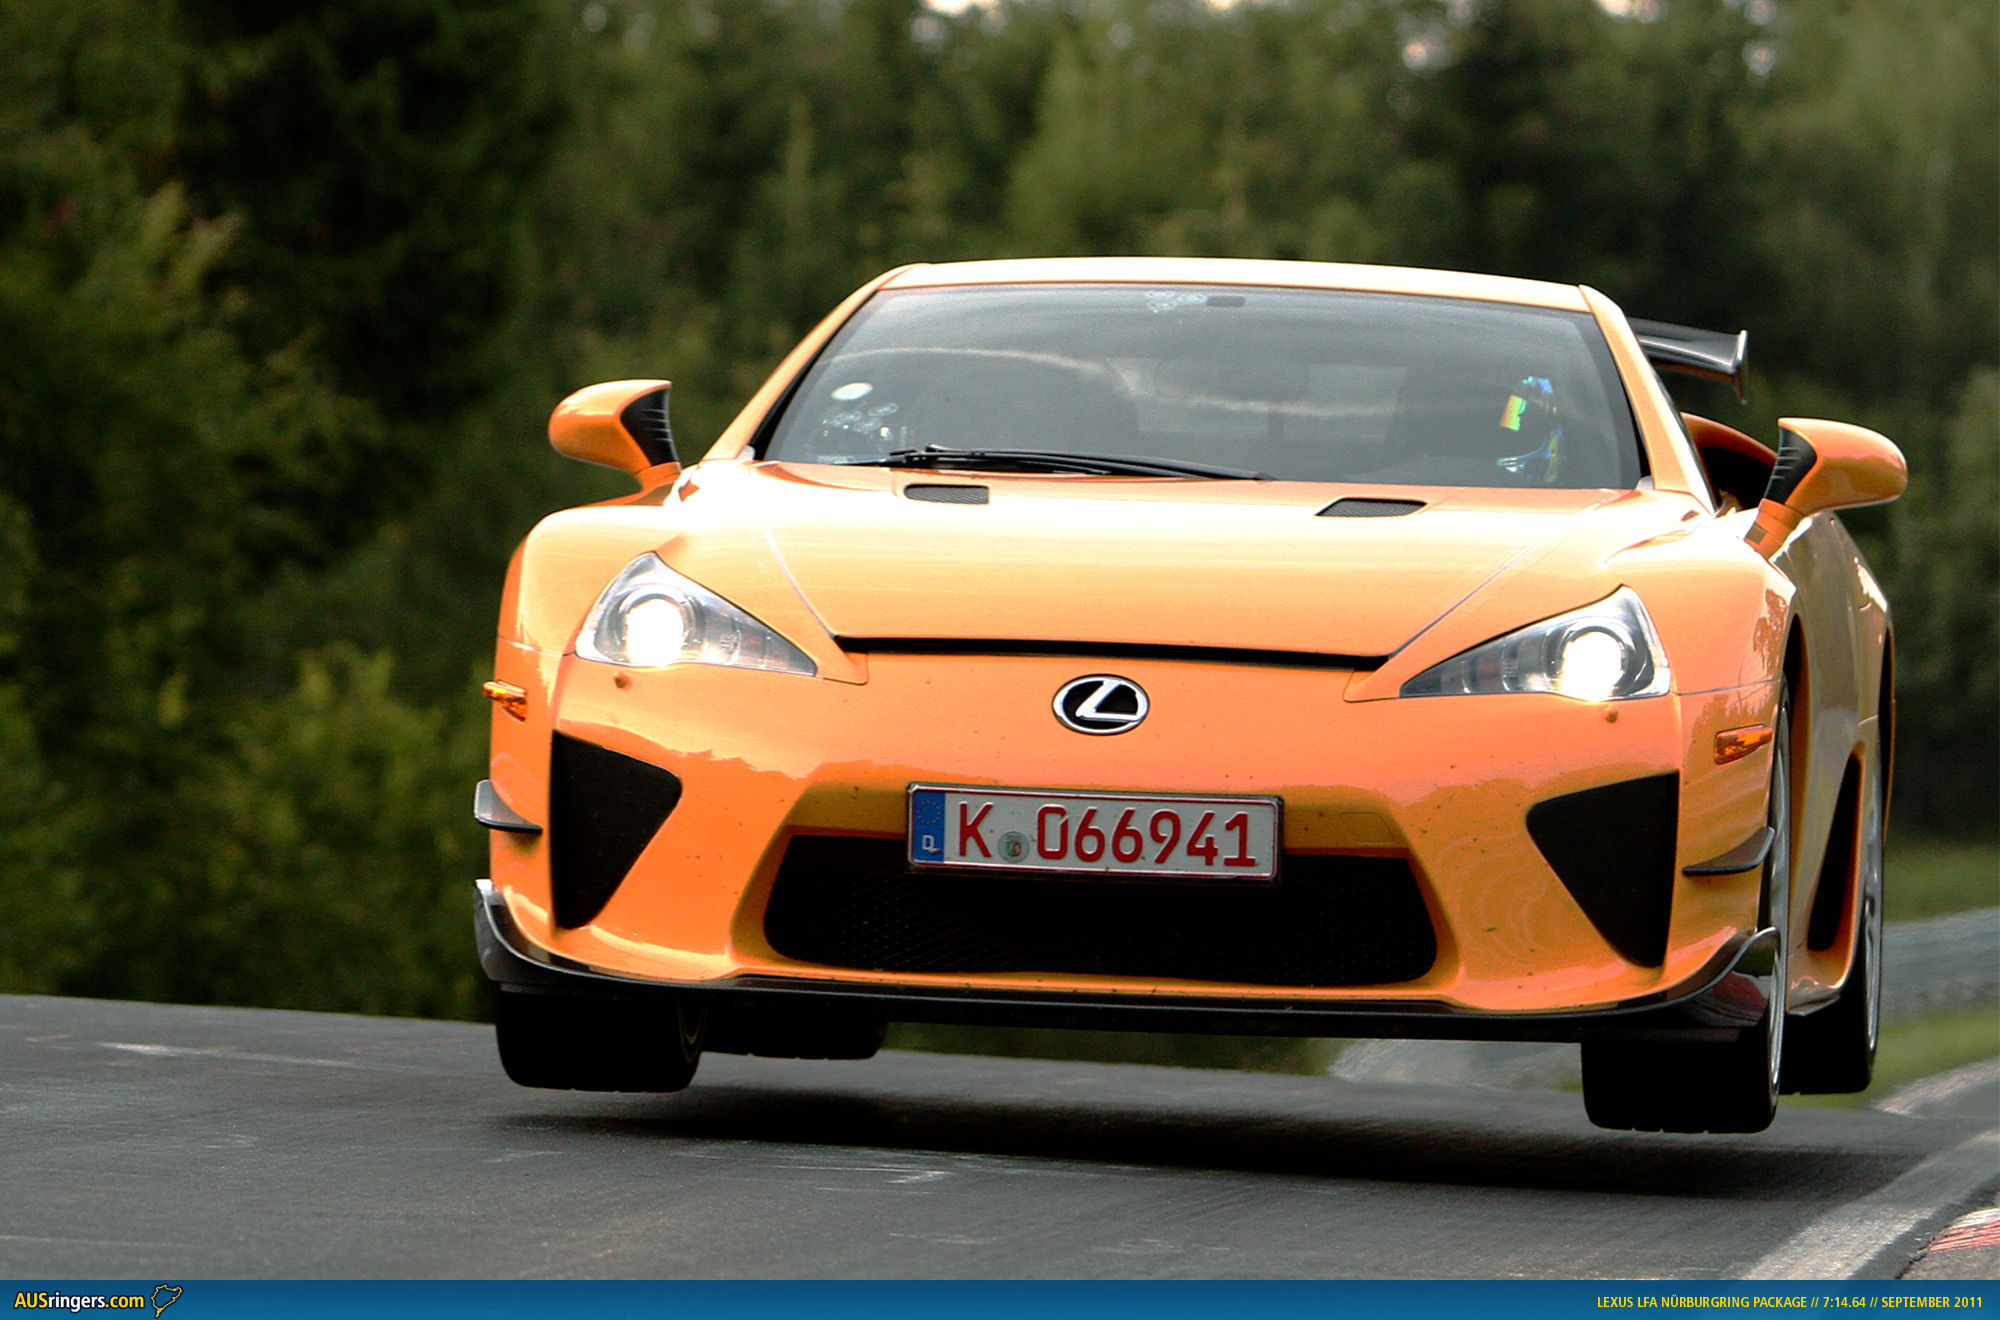 lexus lfa n rburgring claims ring record. Black Bedroom Furniture Sets. Home Design Ideas